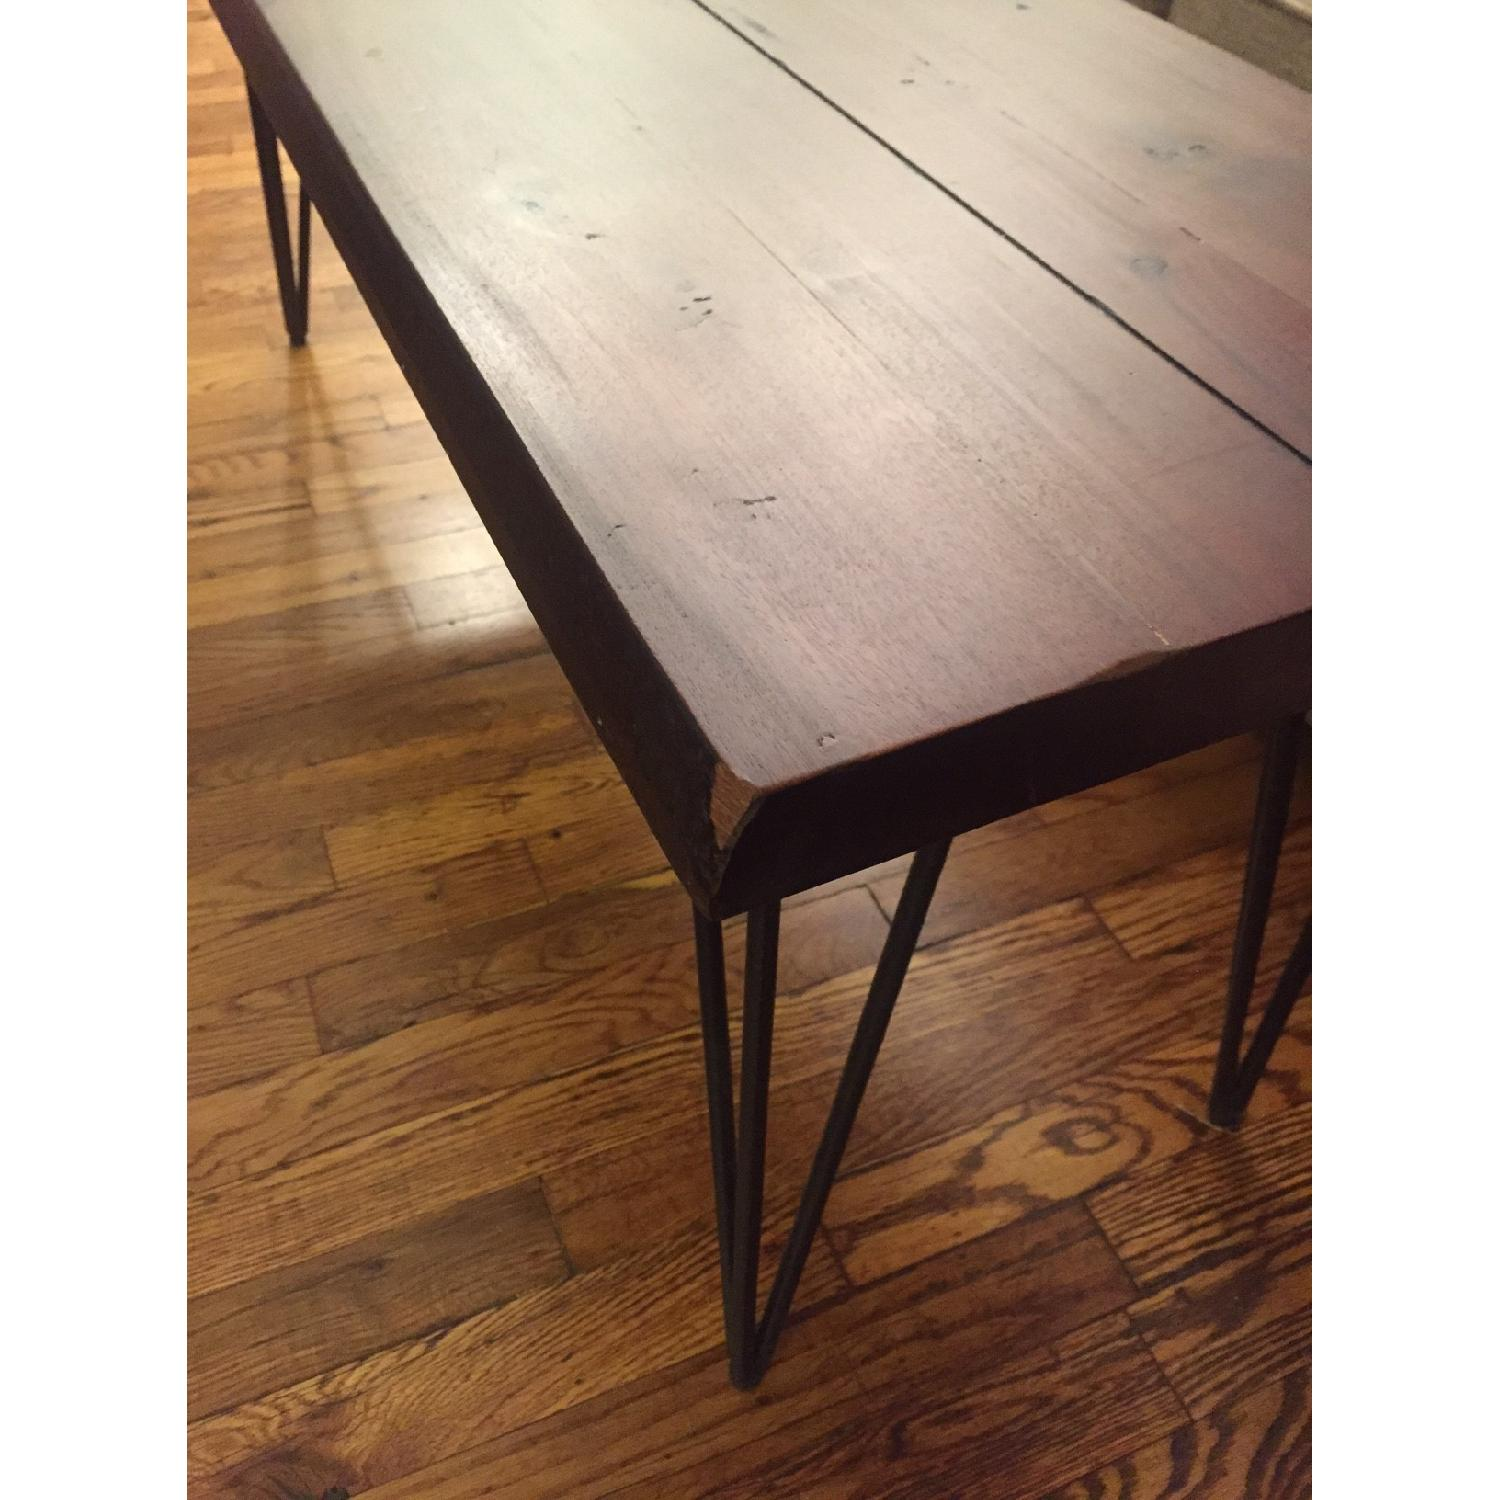 Natural Wood Table/Bench w/ Hairpin Legs - image-6